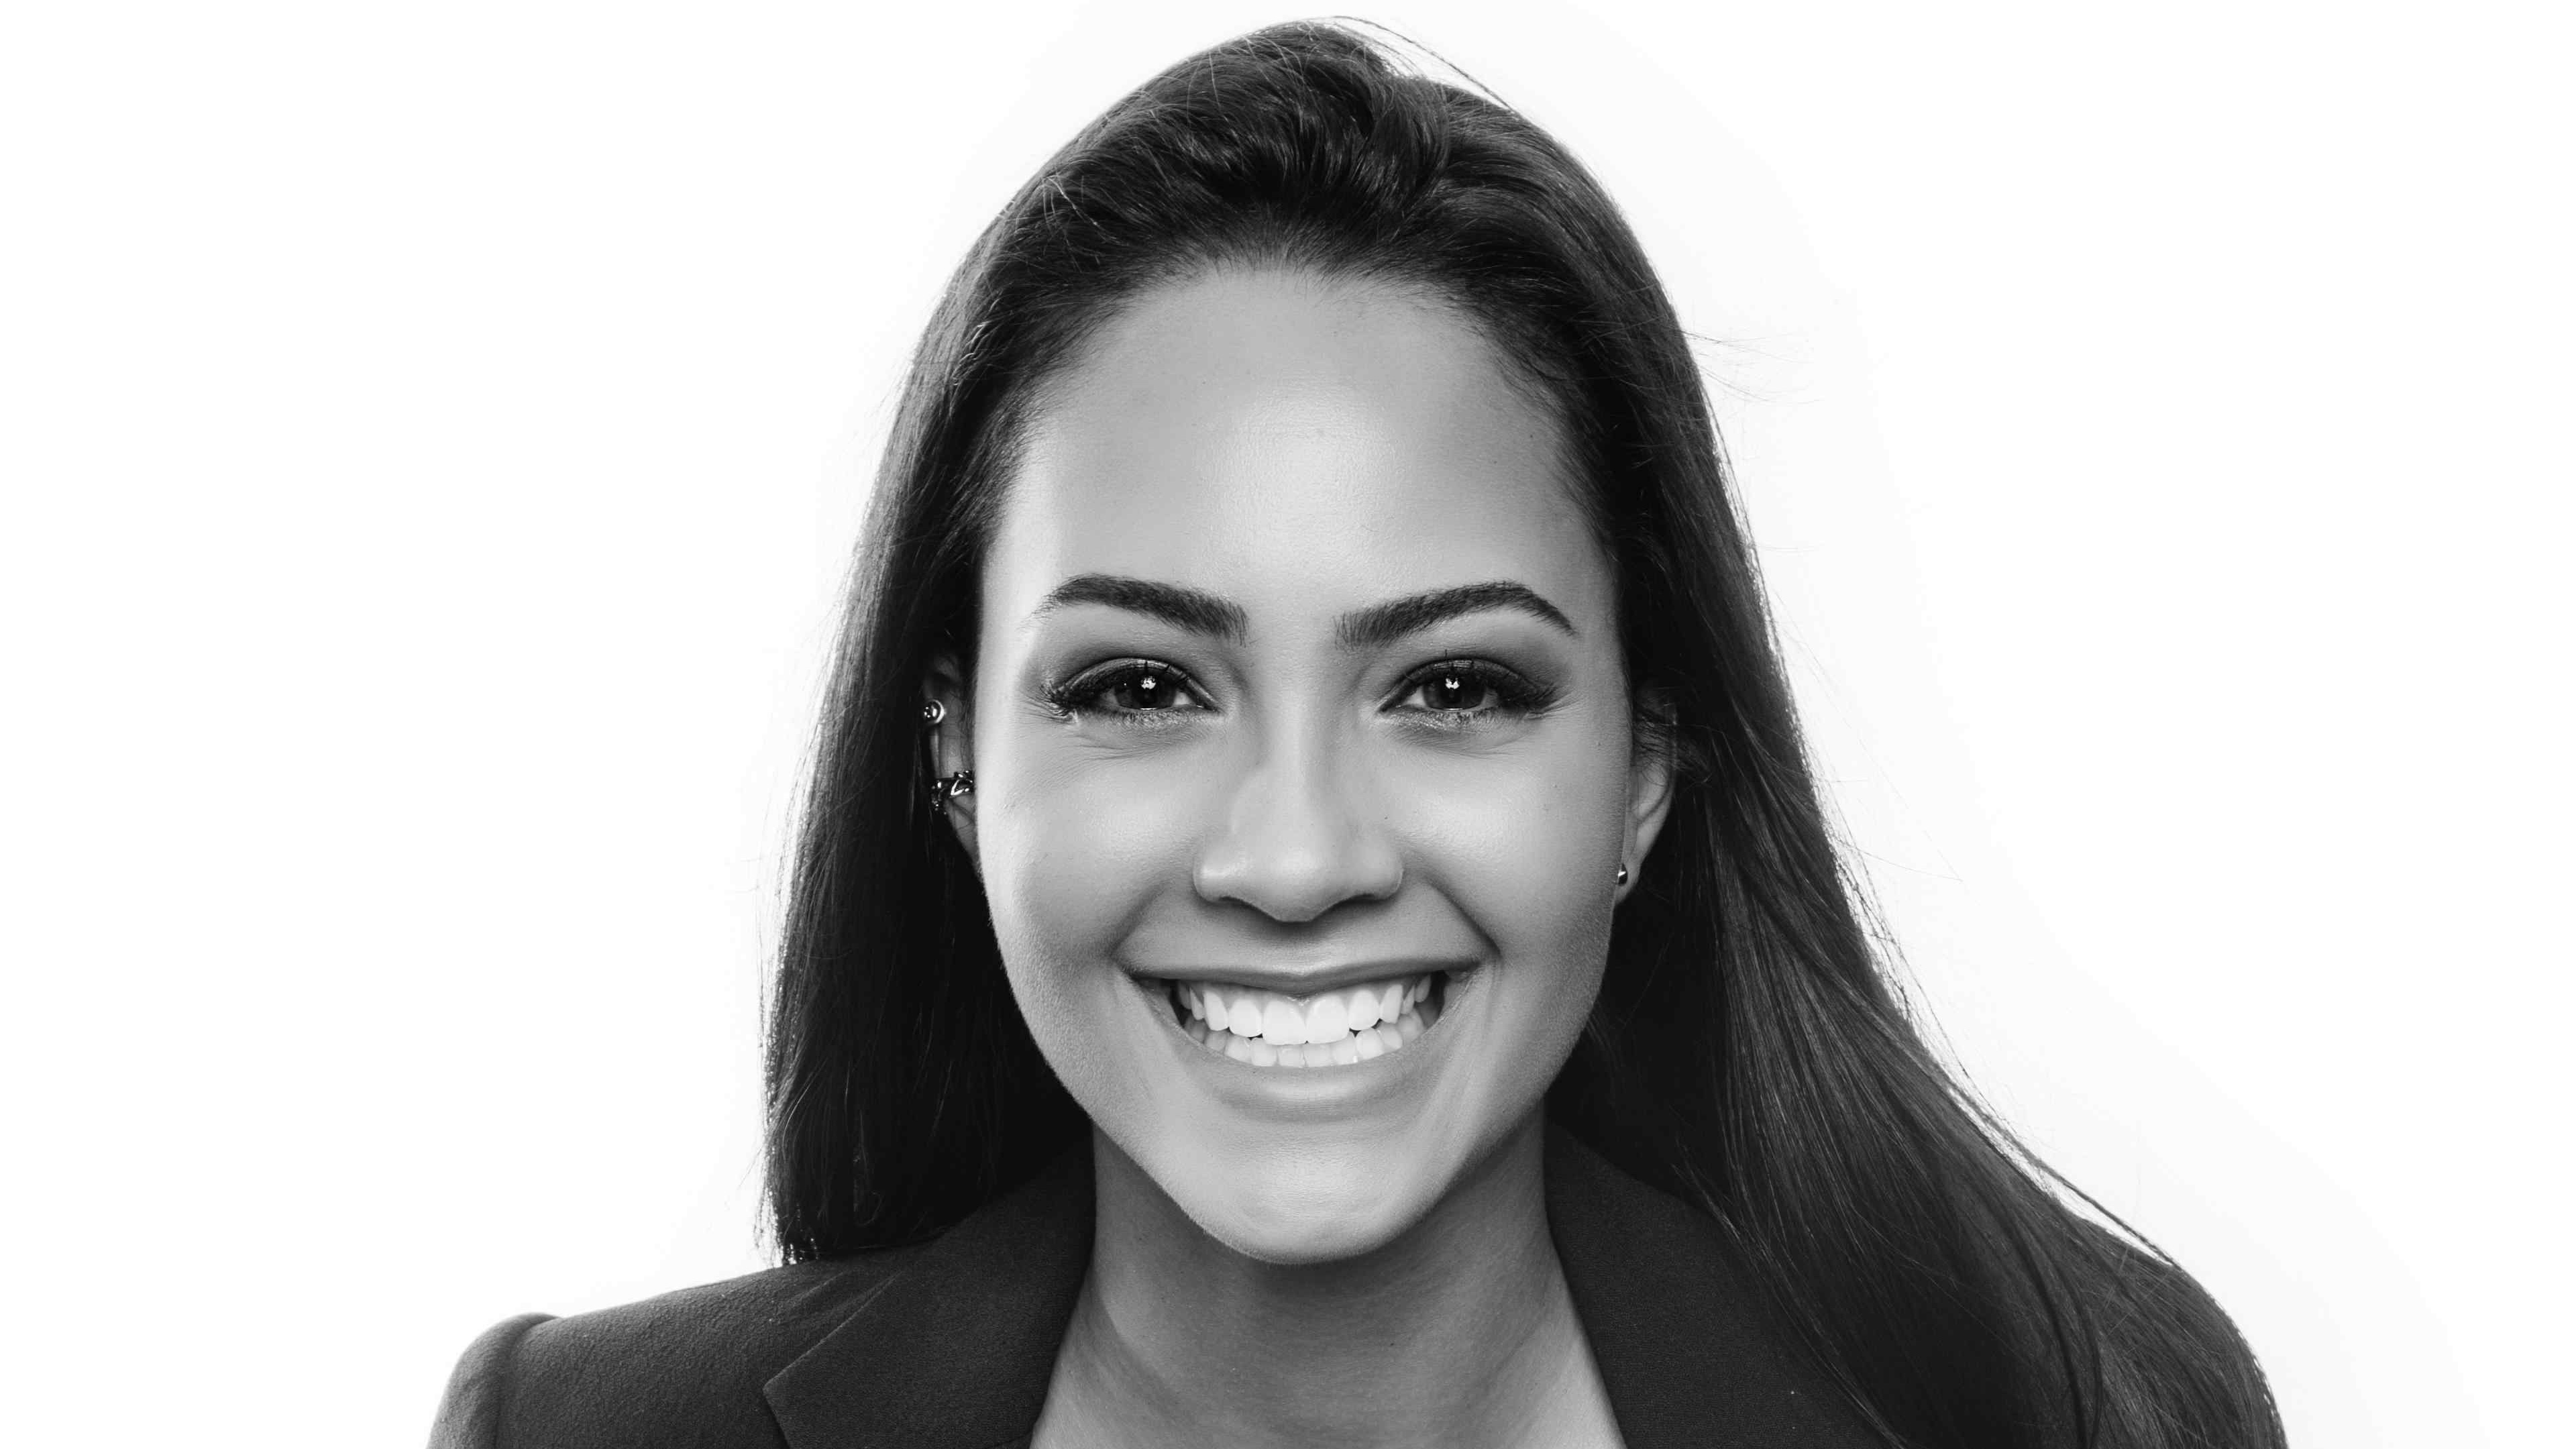 tristin mays 4k 1536863307 - Tristin Mays 4k - tristin mays wallpapers, monochrome wallpapers, hd-wallpapers, girls wallpapers, celebrities wallpapers, black and white wallpapers, 4k-wallpapers